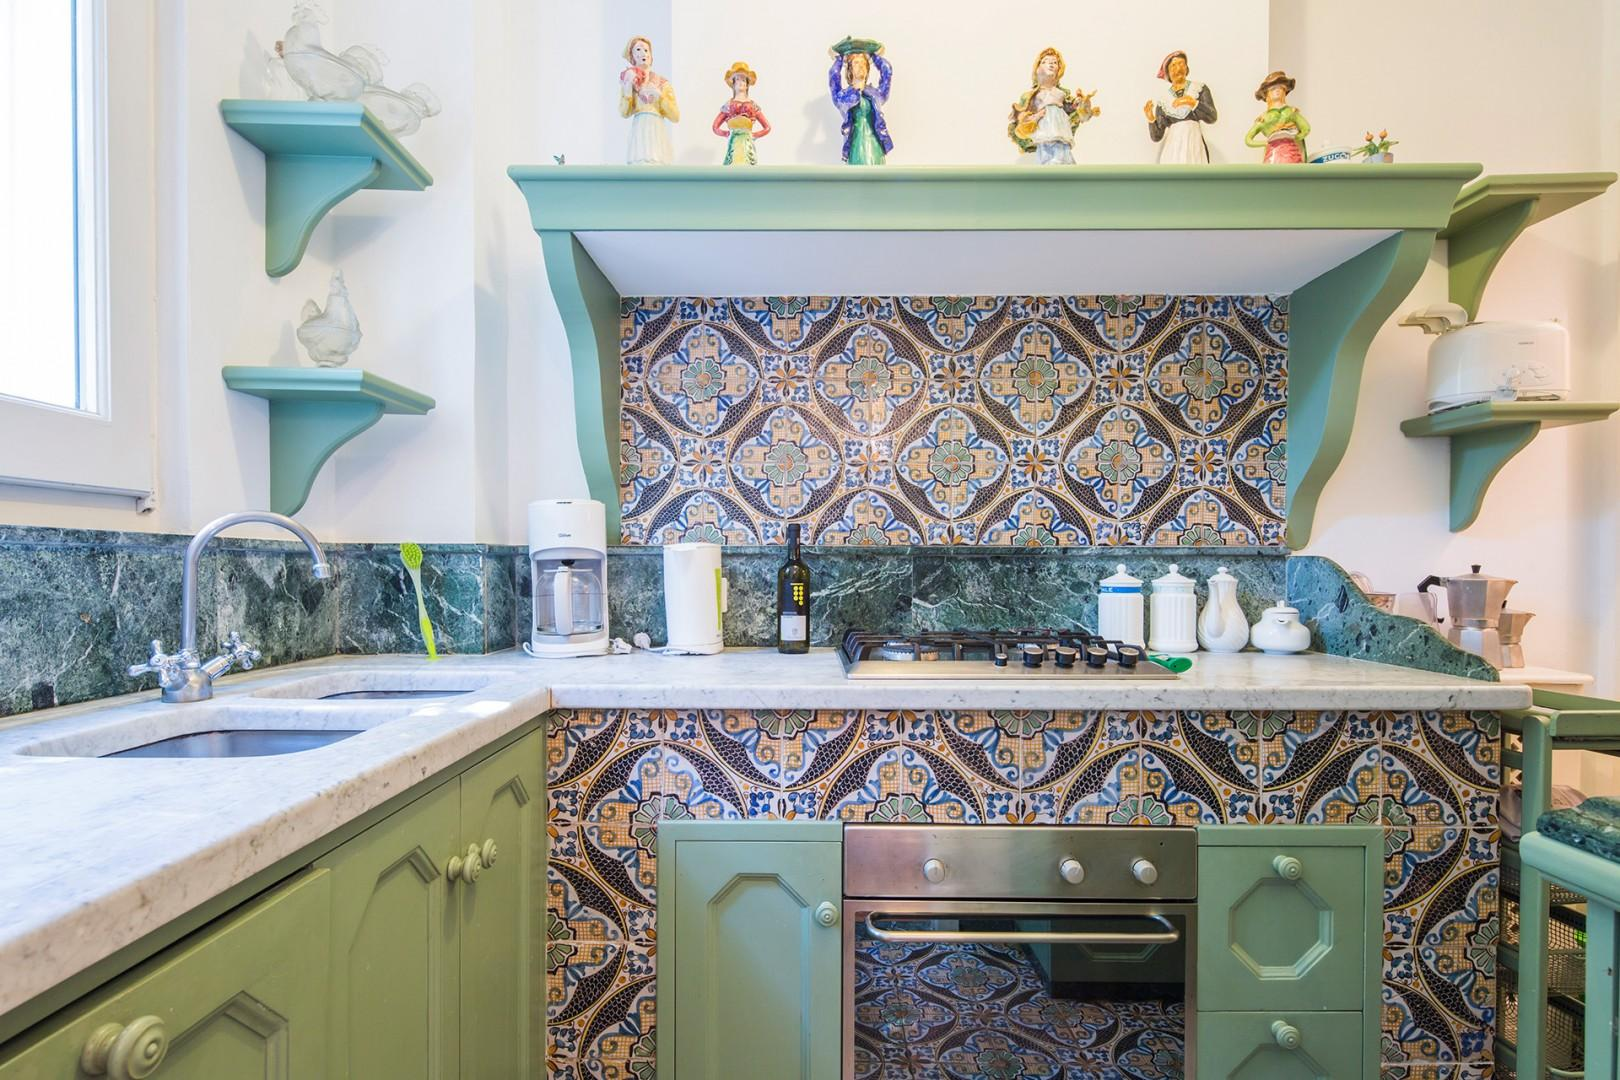 Beautiful tilework in fully equipped kitchen.